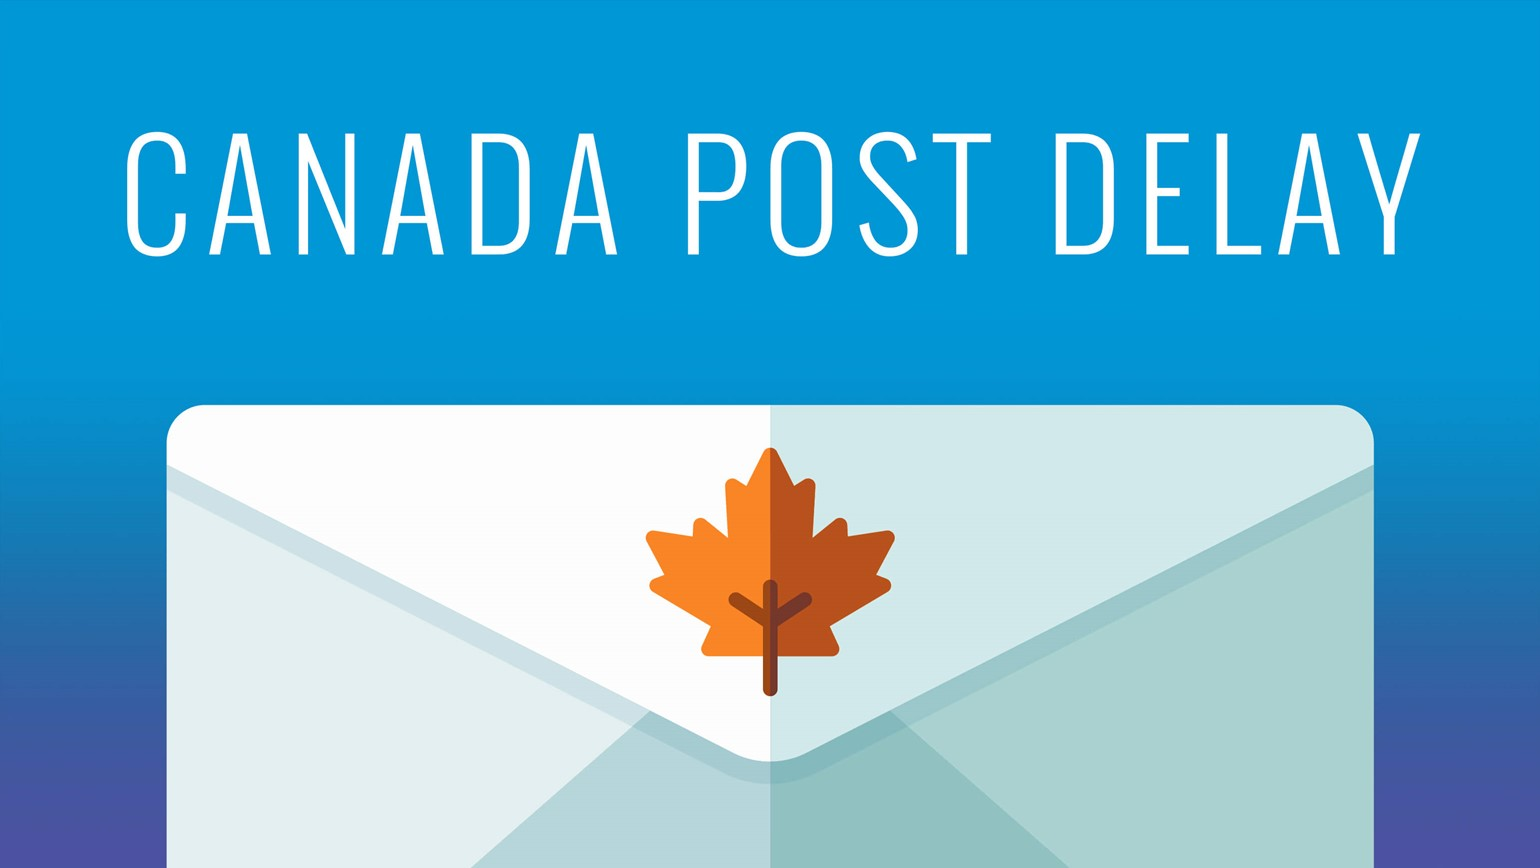 Canada Post Strike Causing Delays on All Packages Going Through Canada